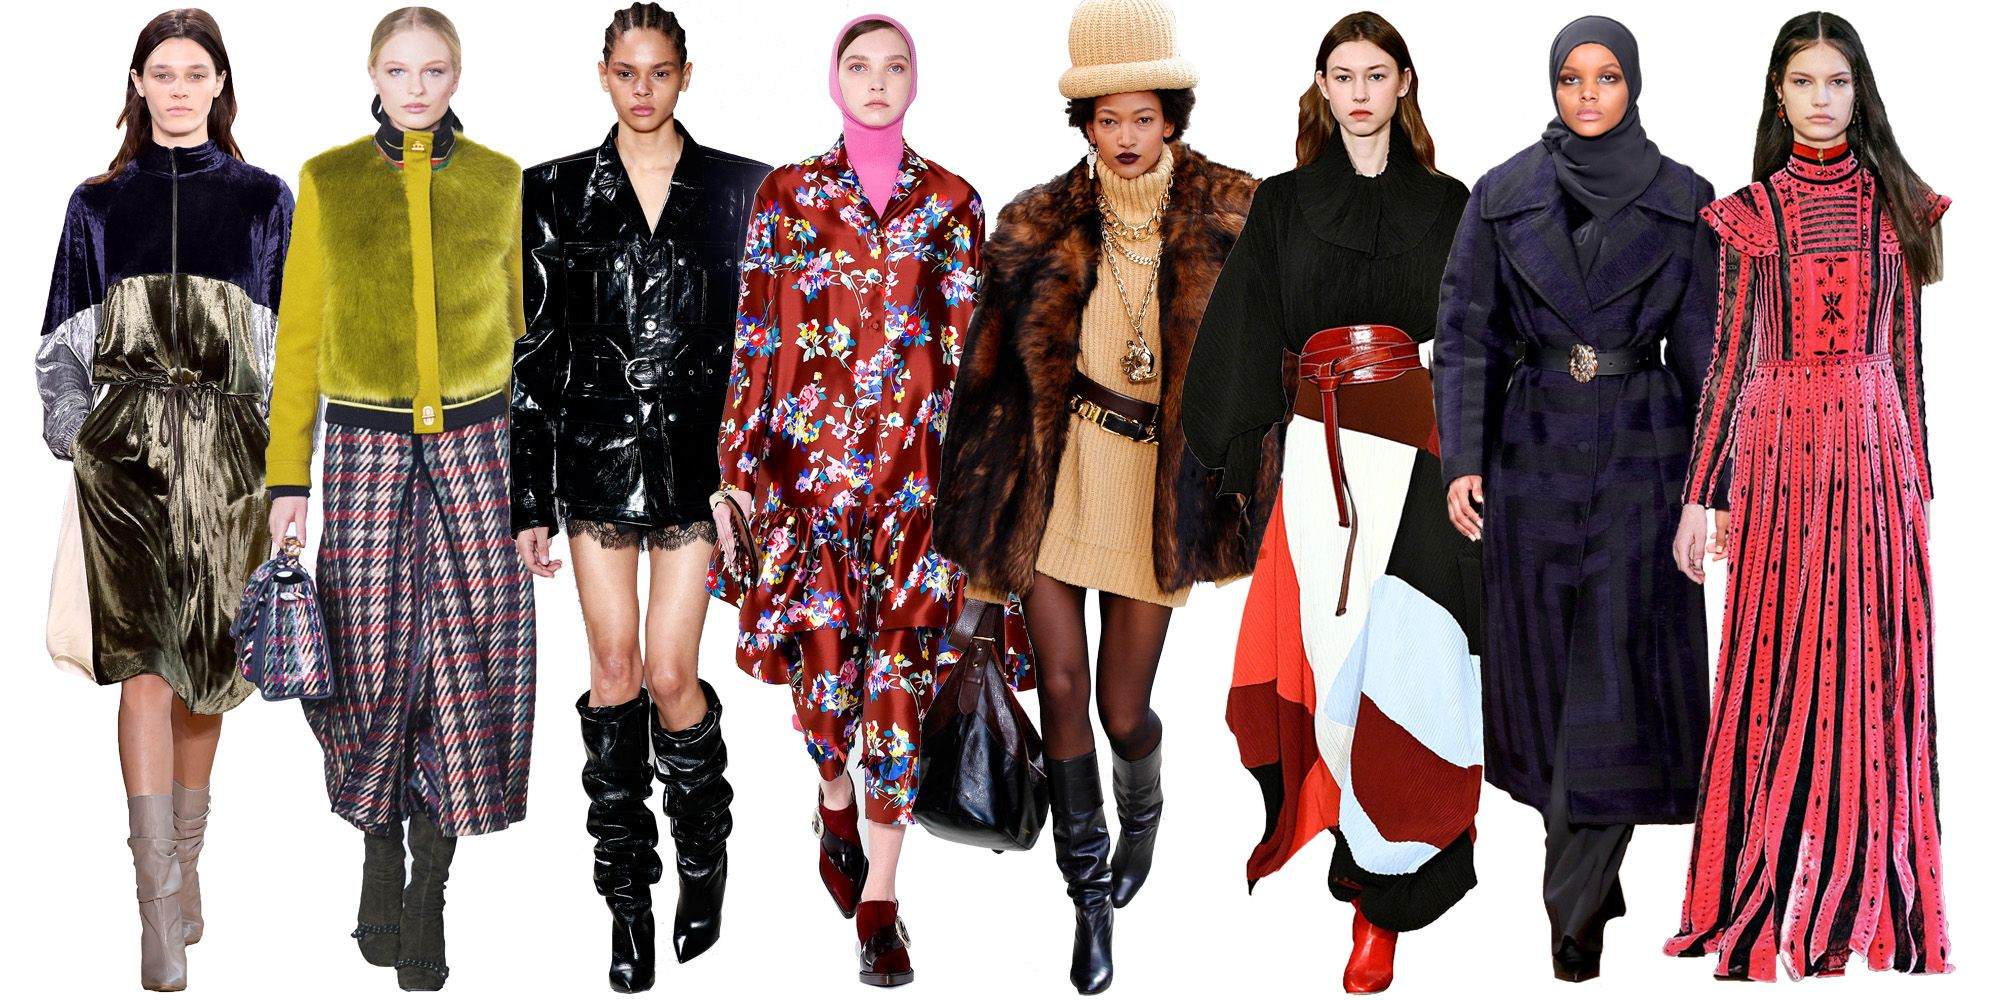 8001ae594f26 Fall 2017 Fashion Trends - Guide to Fall 2017 Styles and Runway Trends